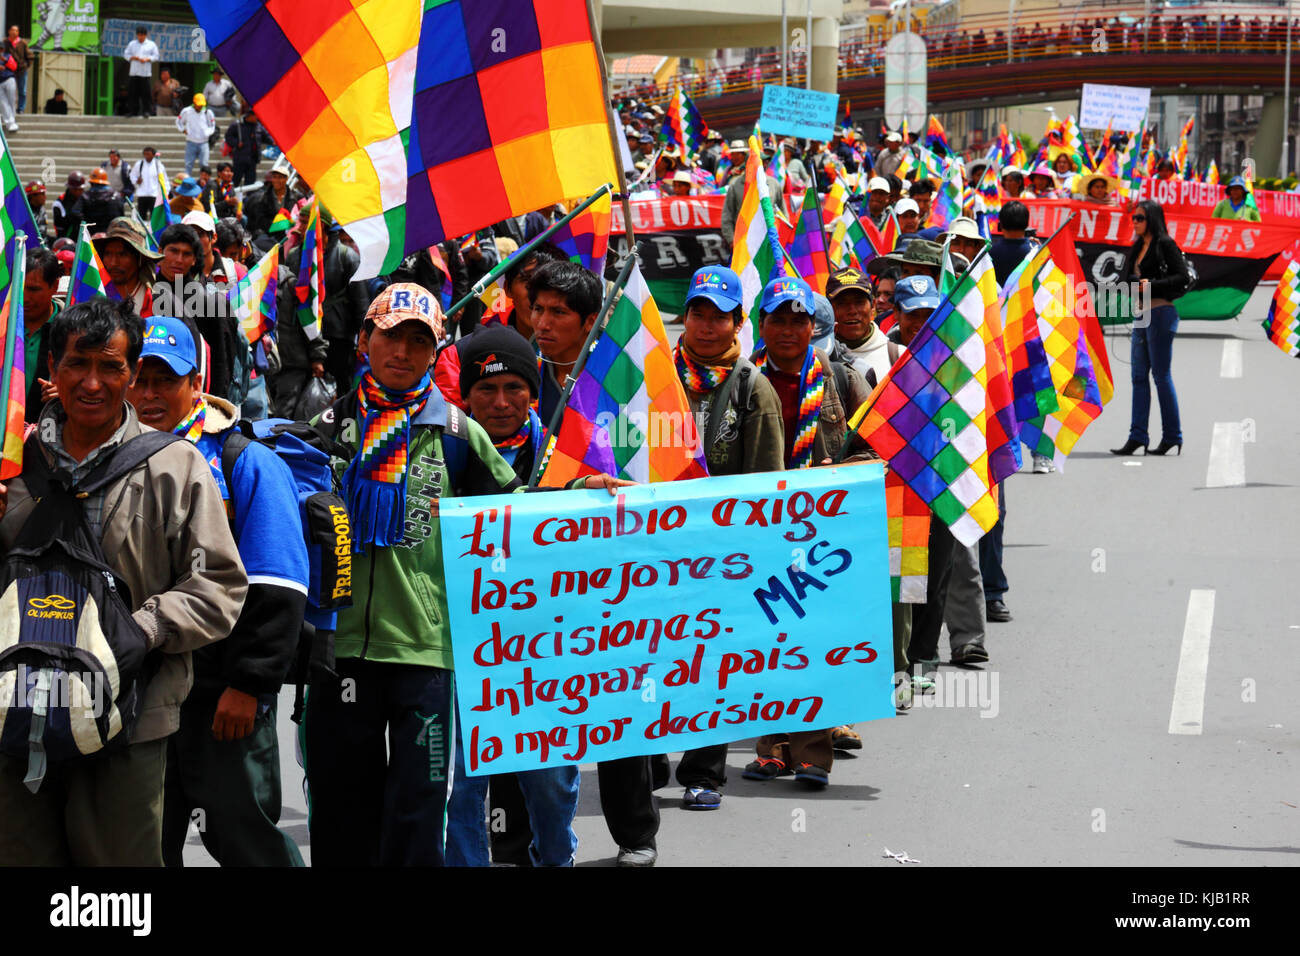 Members of various Social Movements take part in a pro government march supporting plans to build a road through - Stock Image